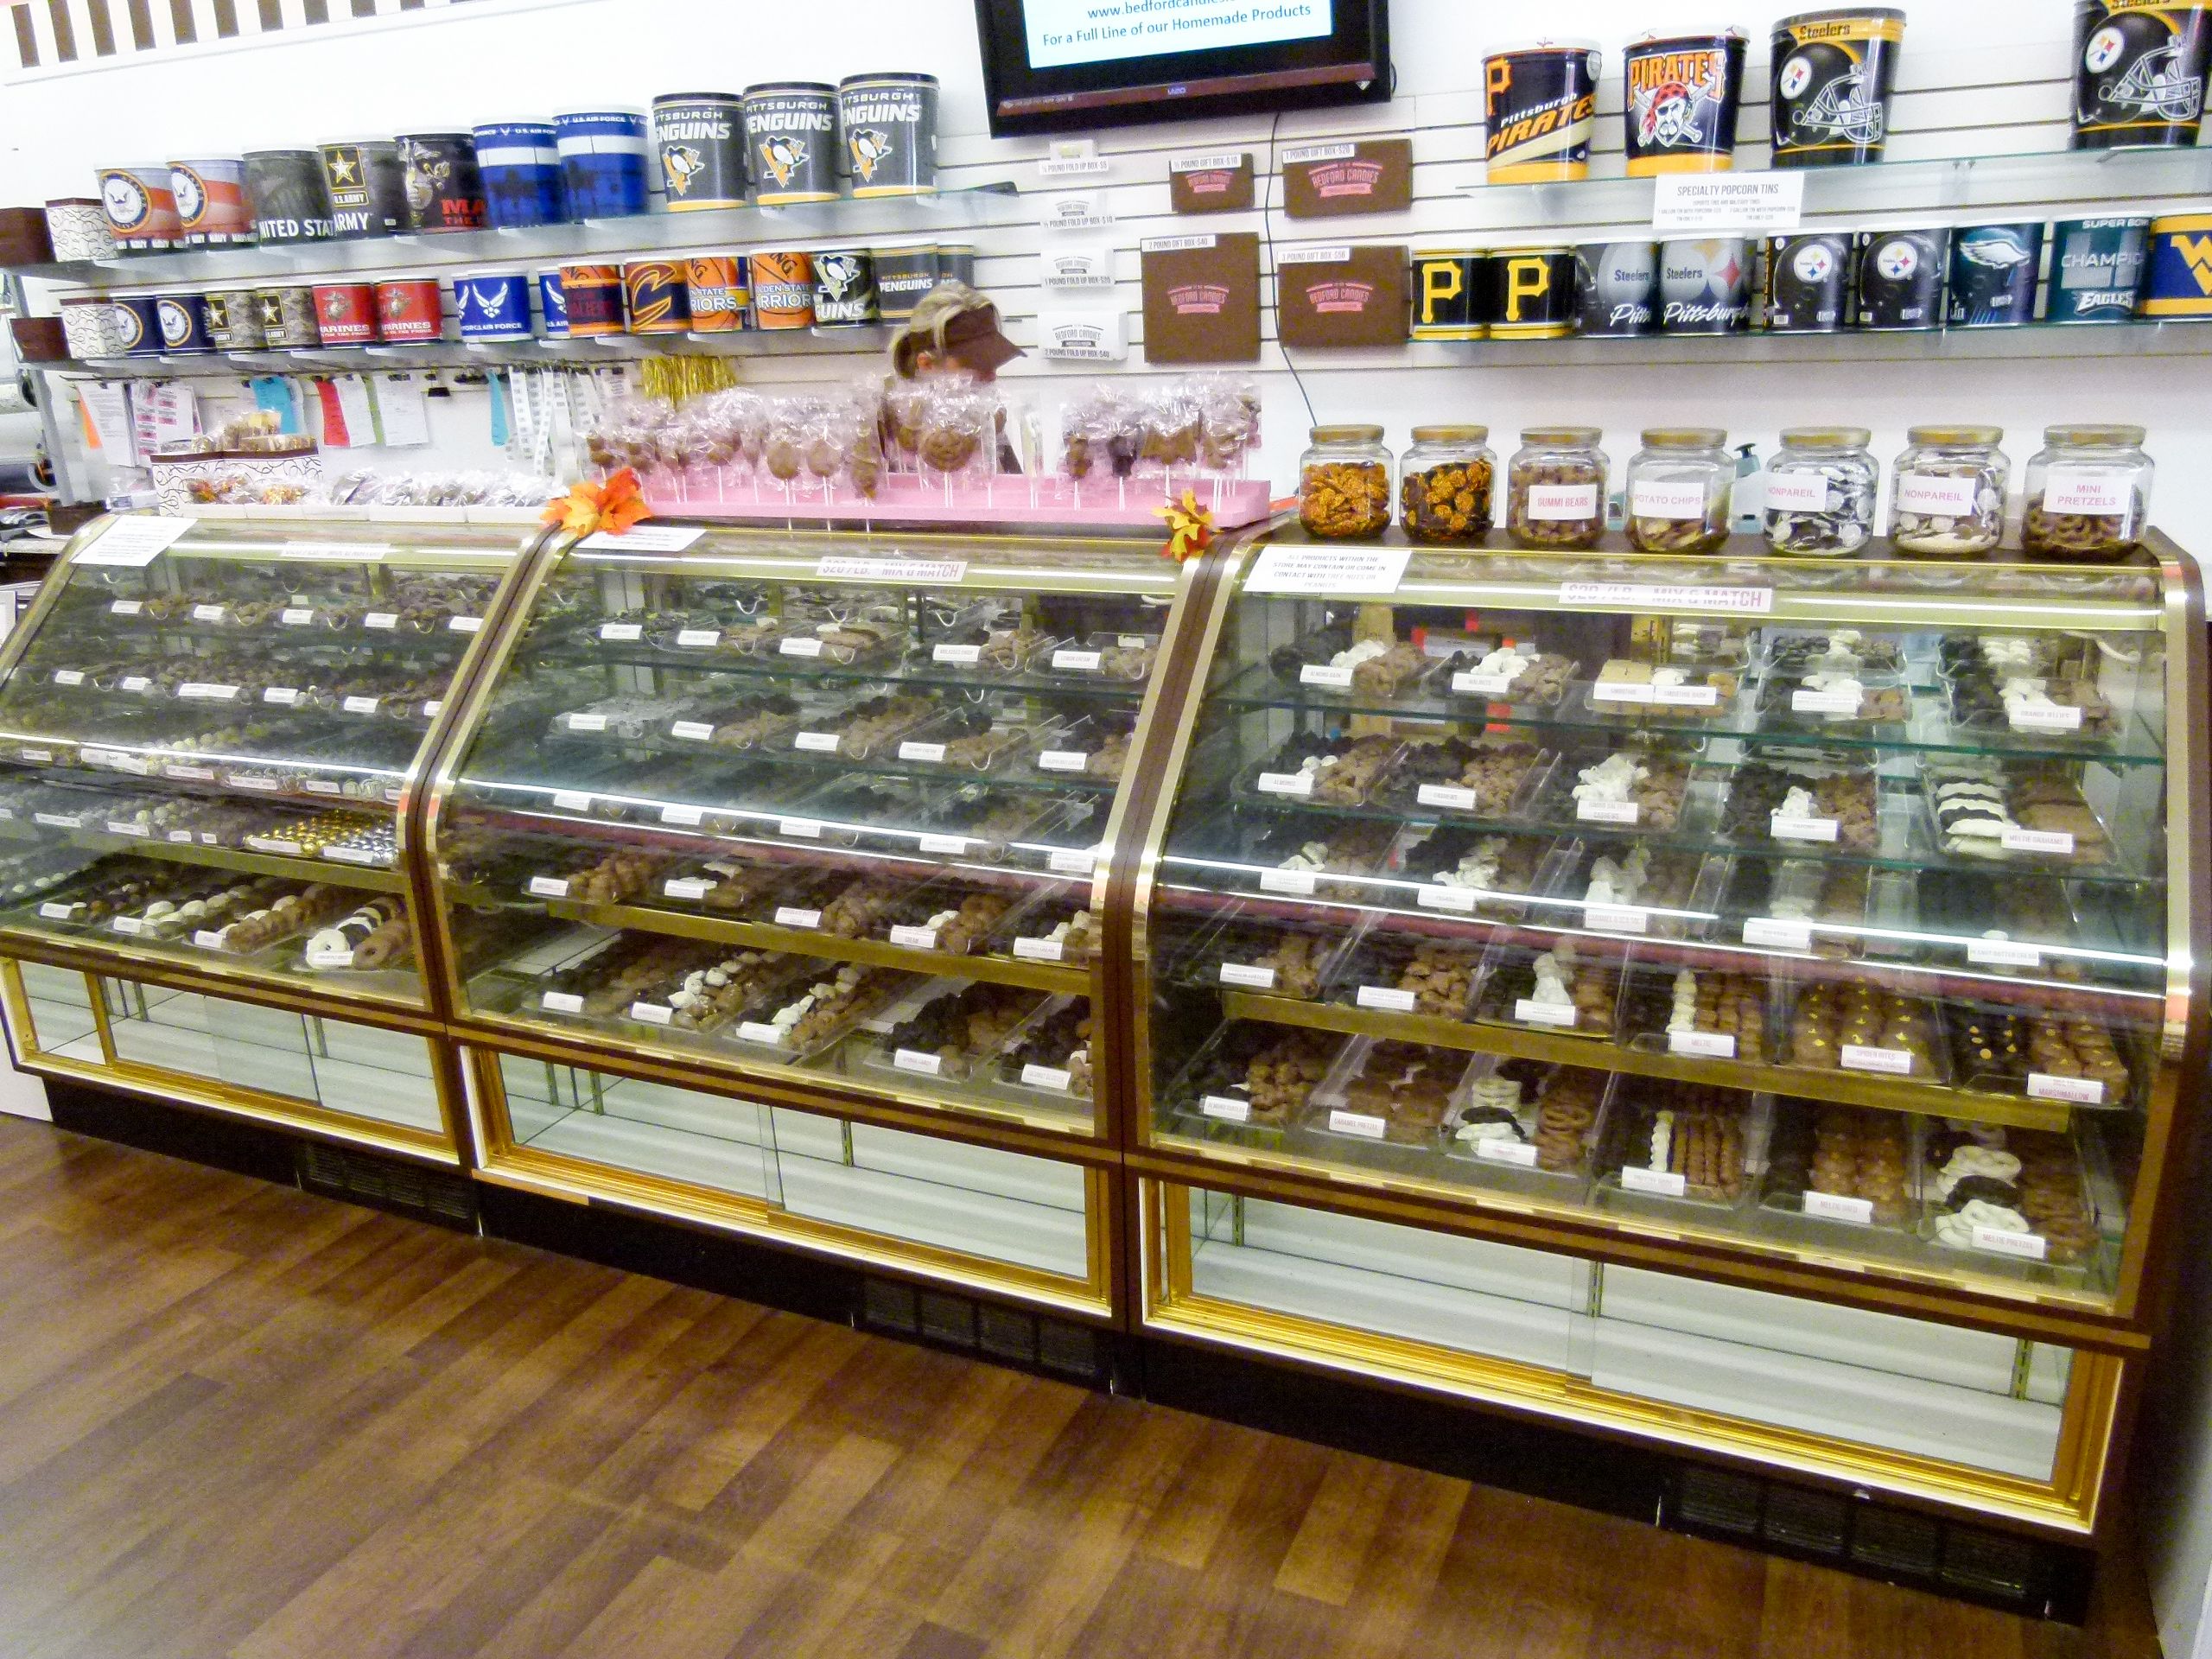 Three cases hold hand-dipped chocolates and truffles. Manger J.D. works on an order behind the counter.